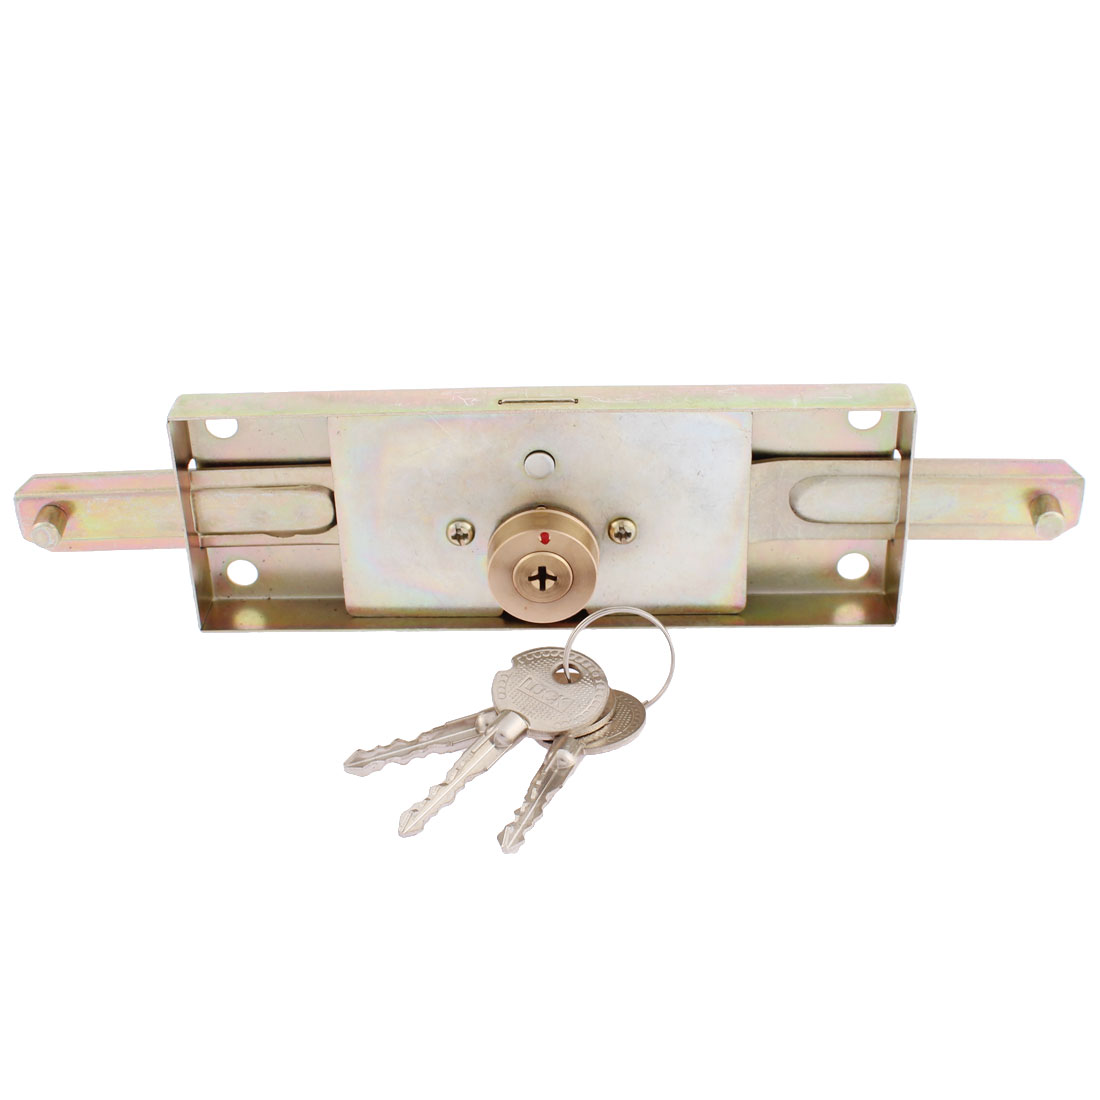 Warehouse Garage Head Cylinder Cross Type Keyway Metallic Center Rolling Shutter Door Lock w 3 Keys Brass Tone